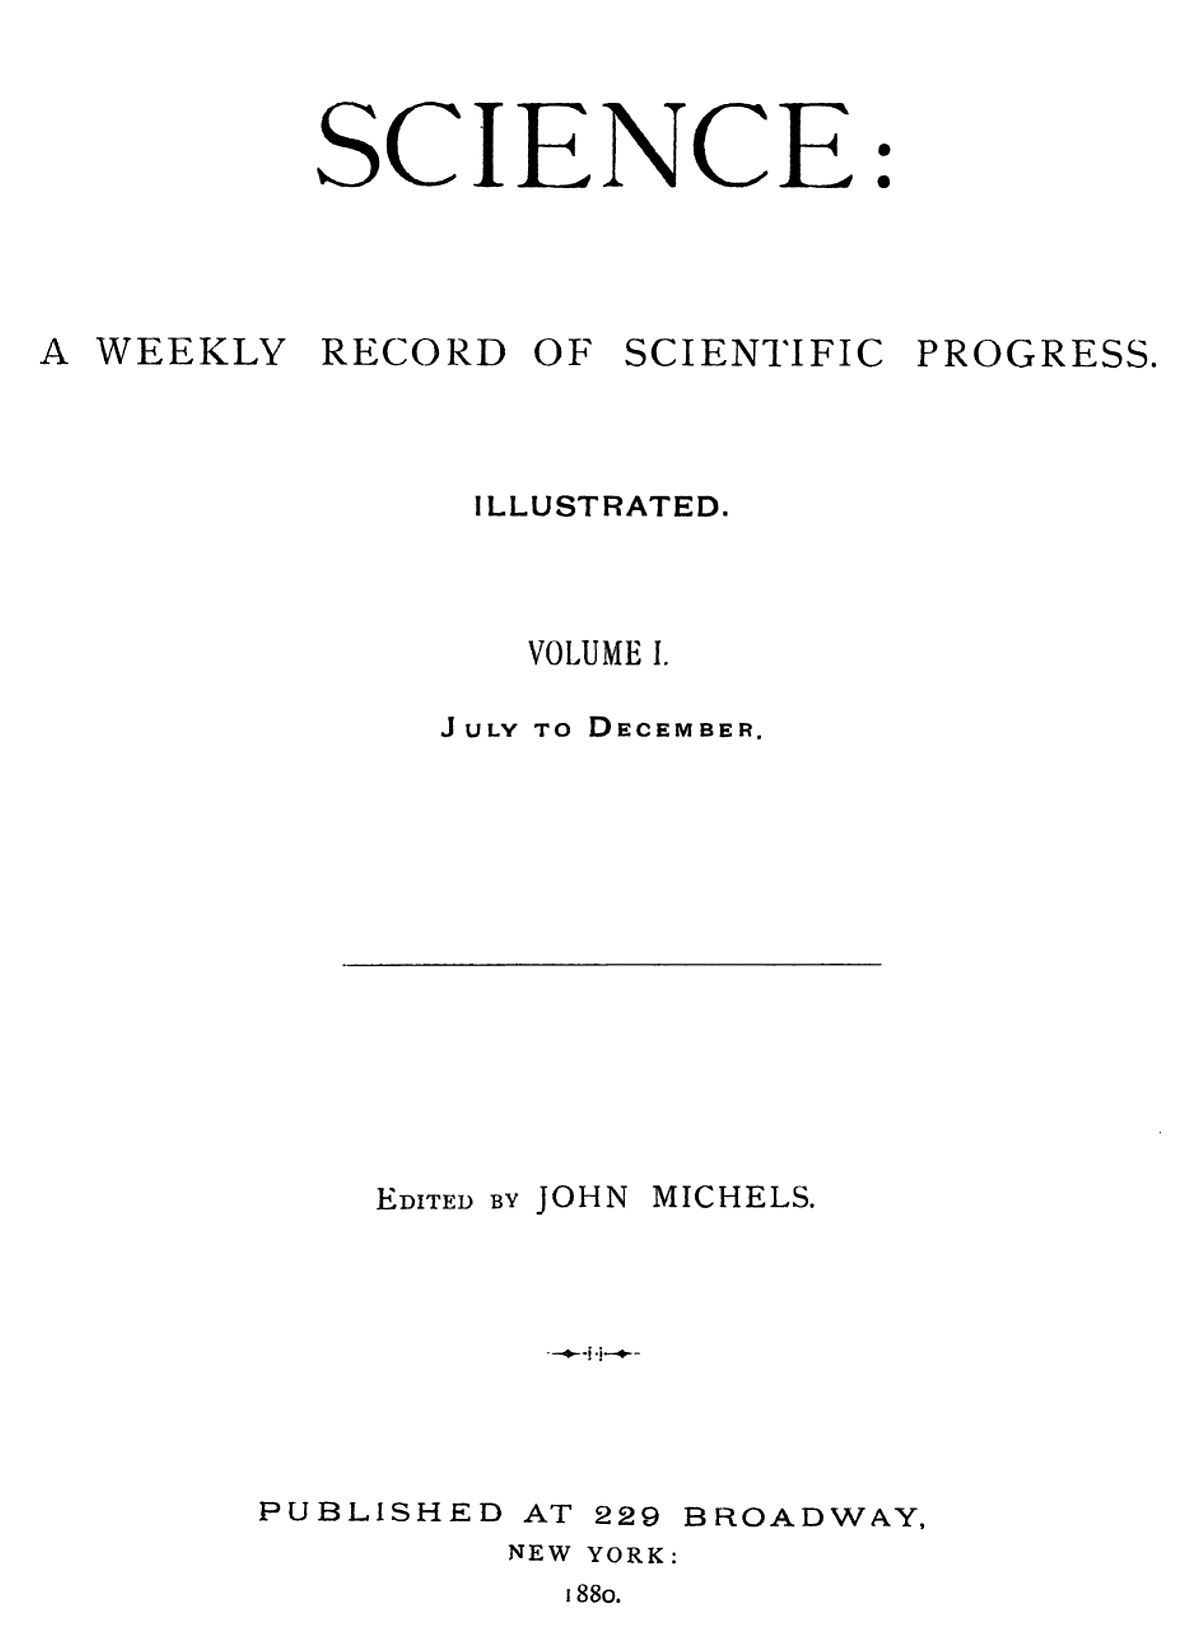 009 Free Science Researchs Online 1200px Vol  1 28188029 Singular Research PapersFull